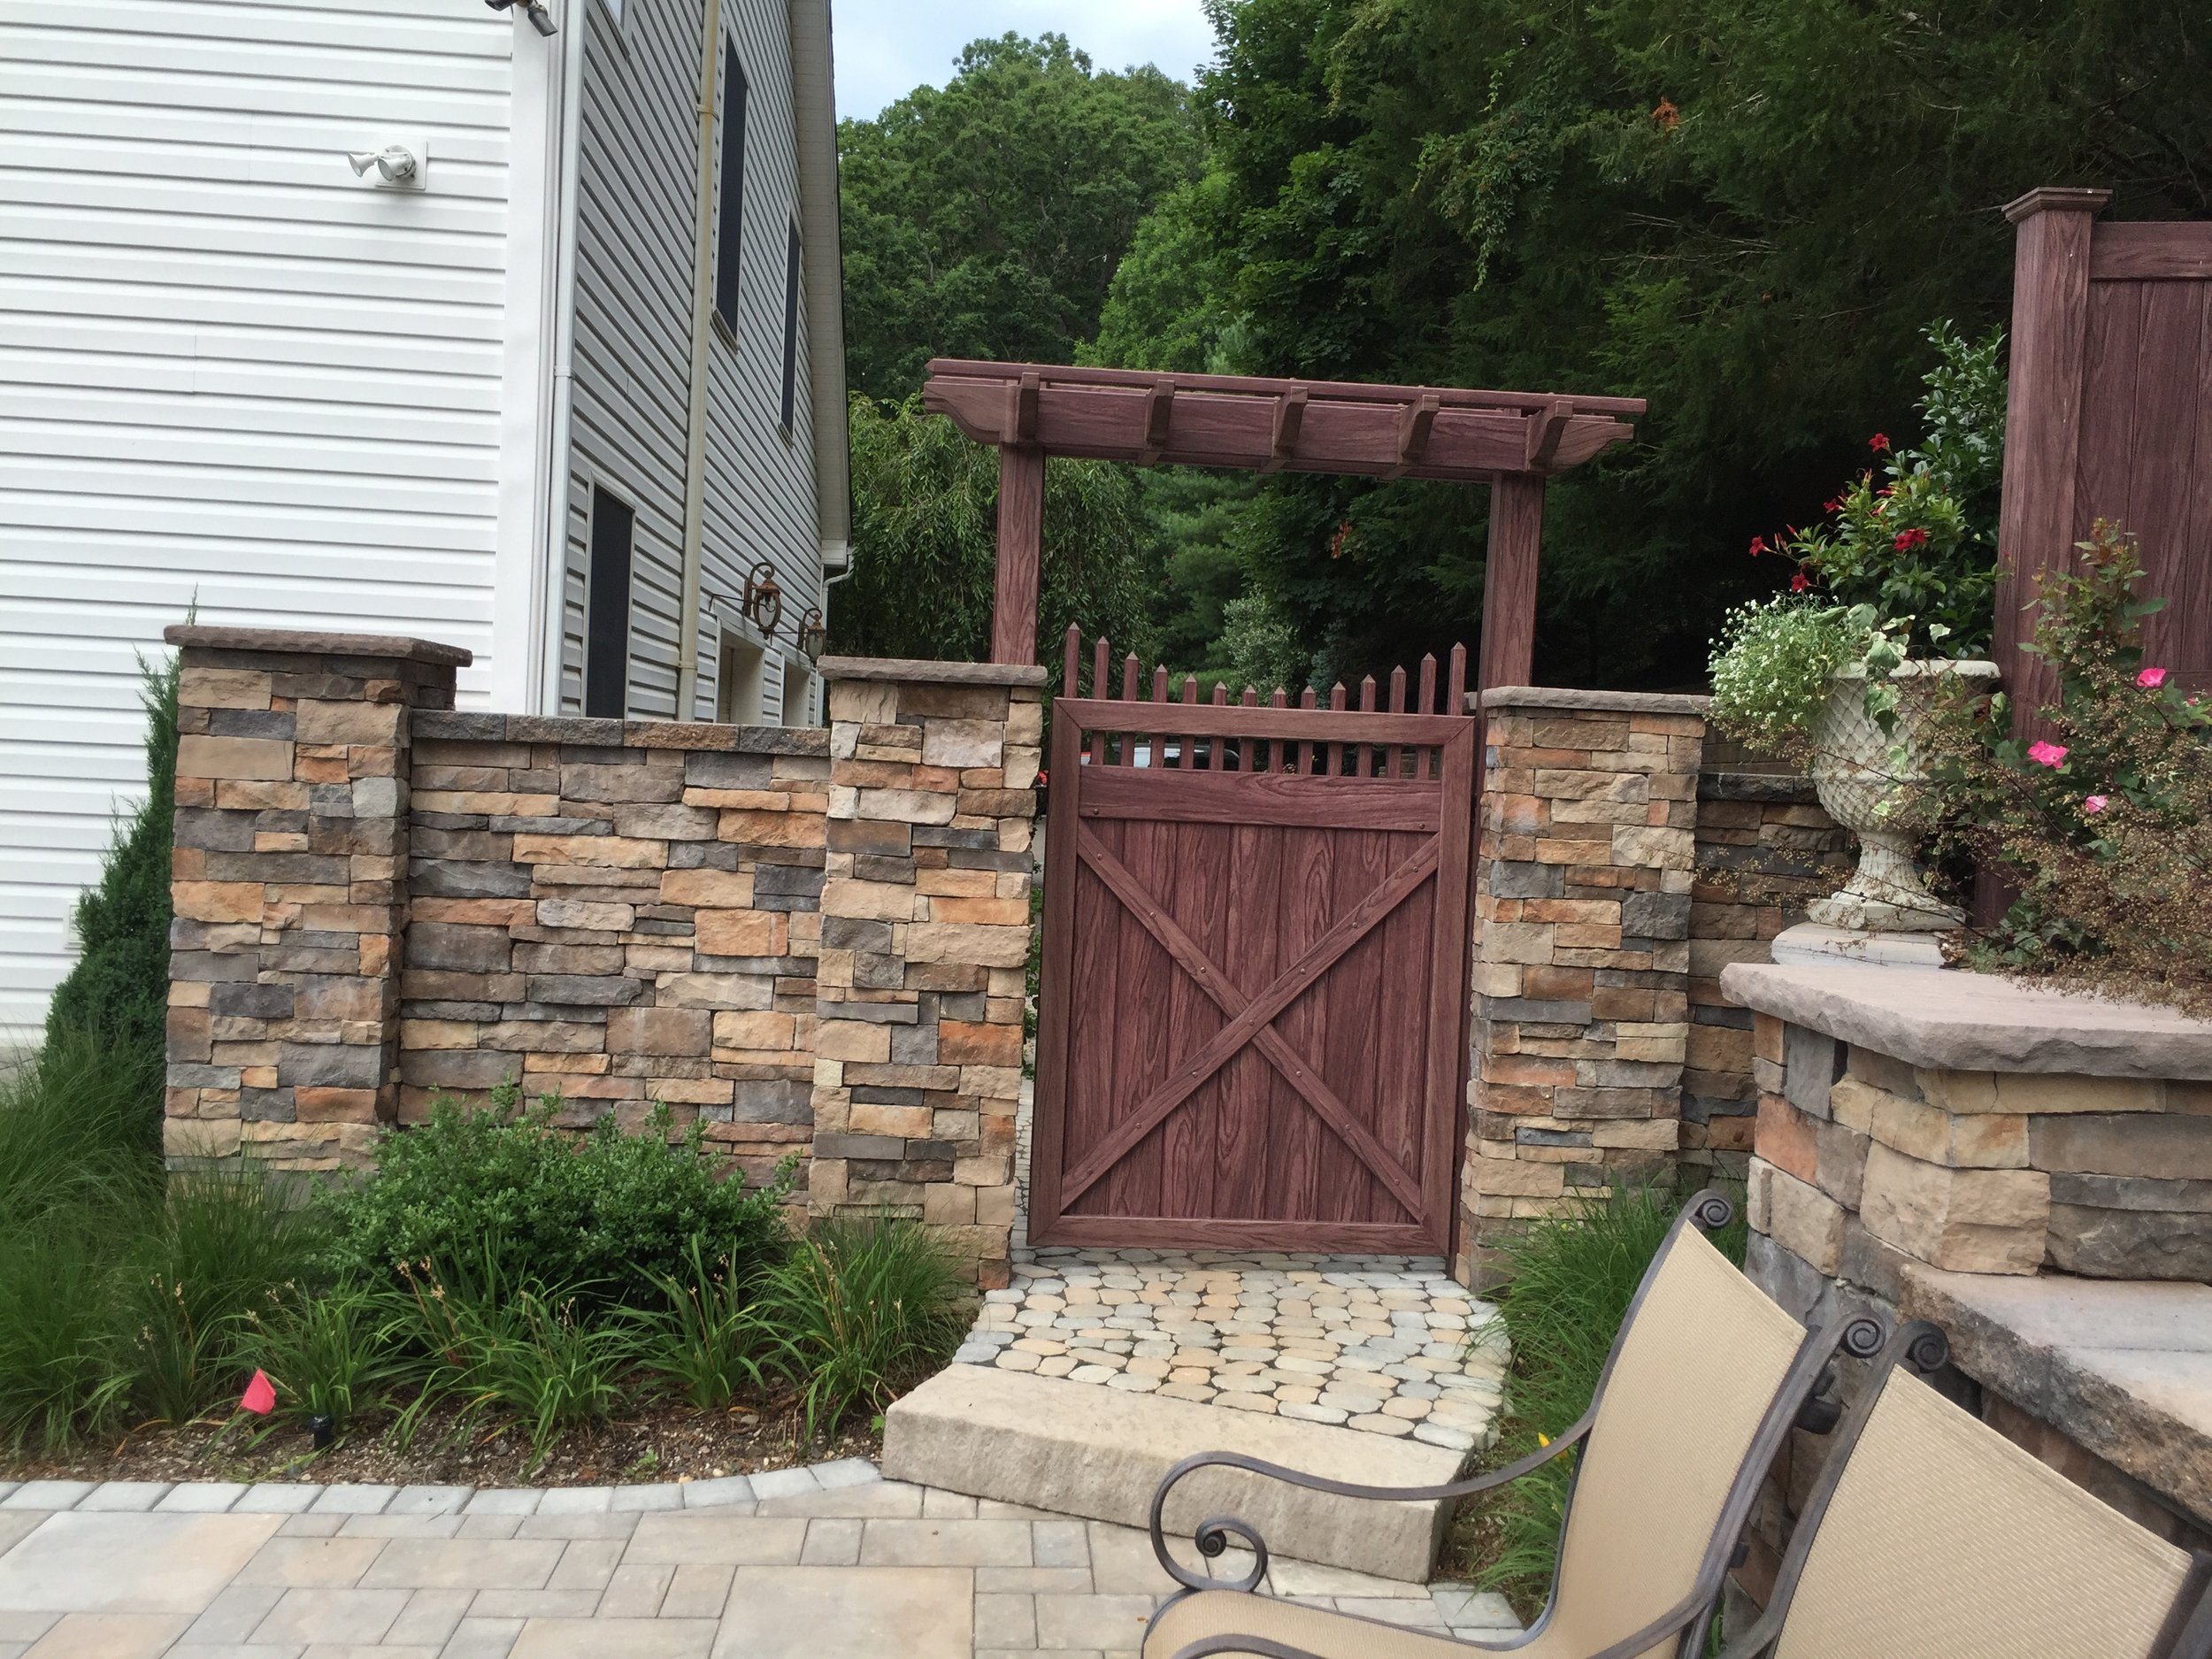 View Project Featuring Fences:  Earthy Tones    VIEW PROJECT